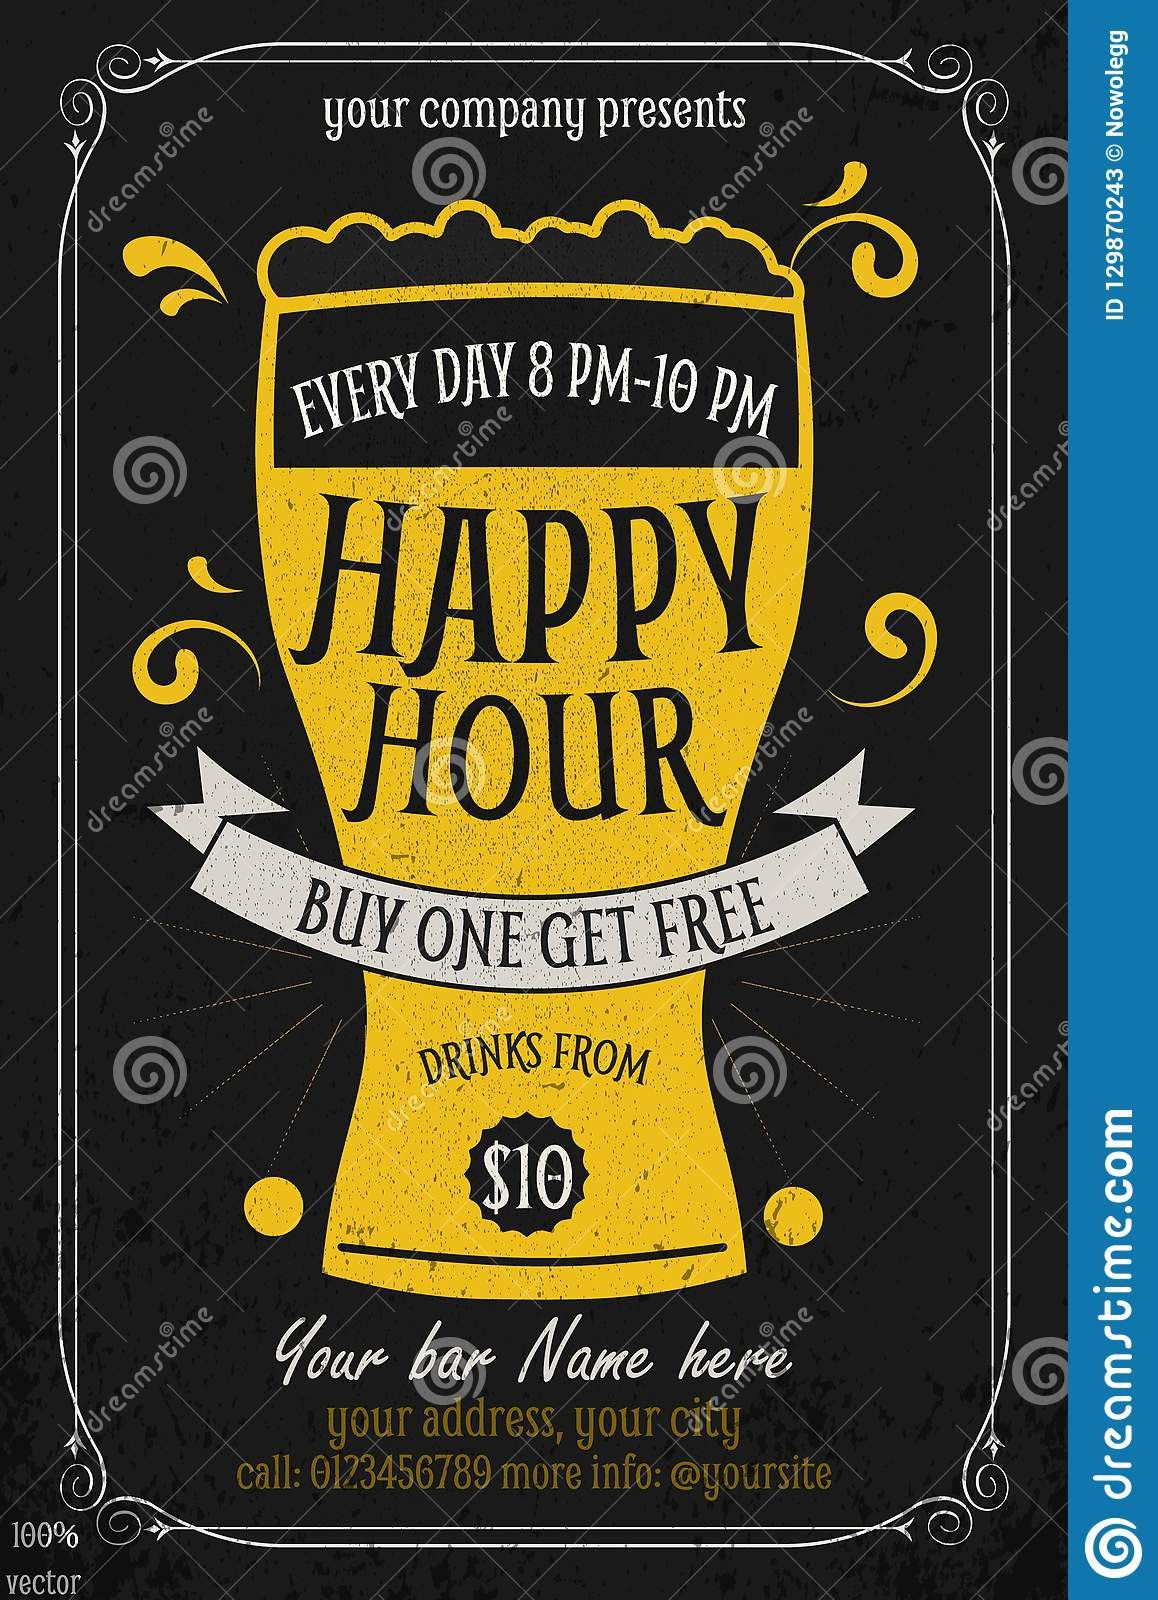 006 Unforgettable Happy Hour Invitation Template Idea  Templates Free Word FarewellFull